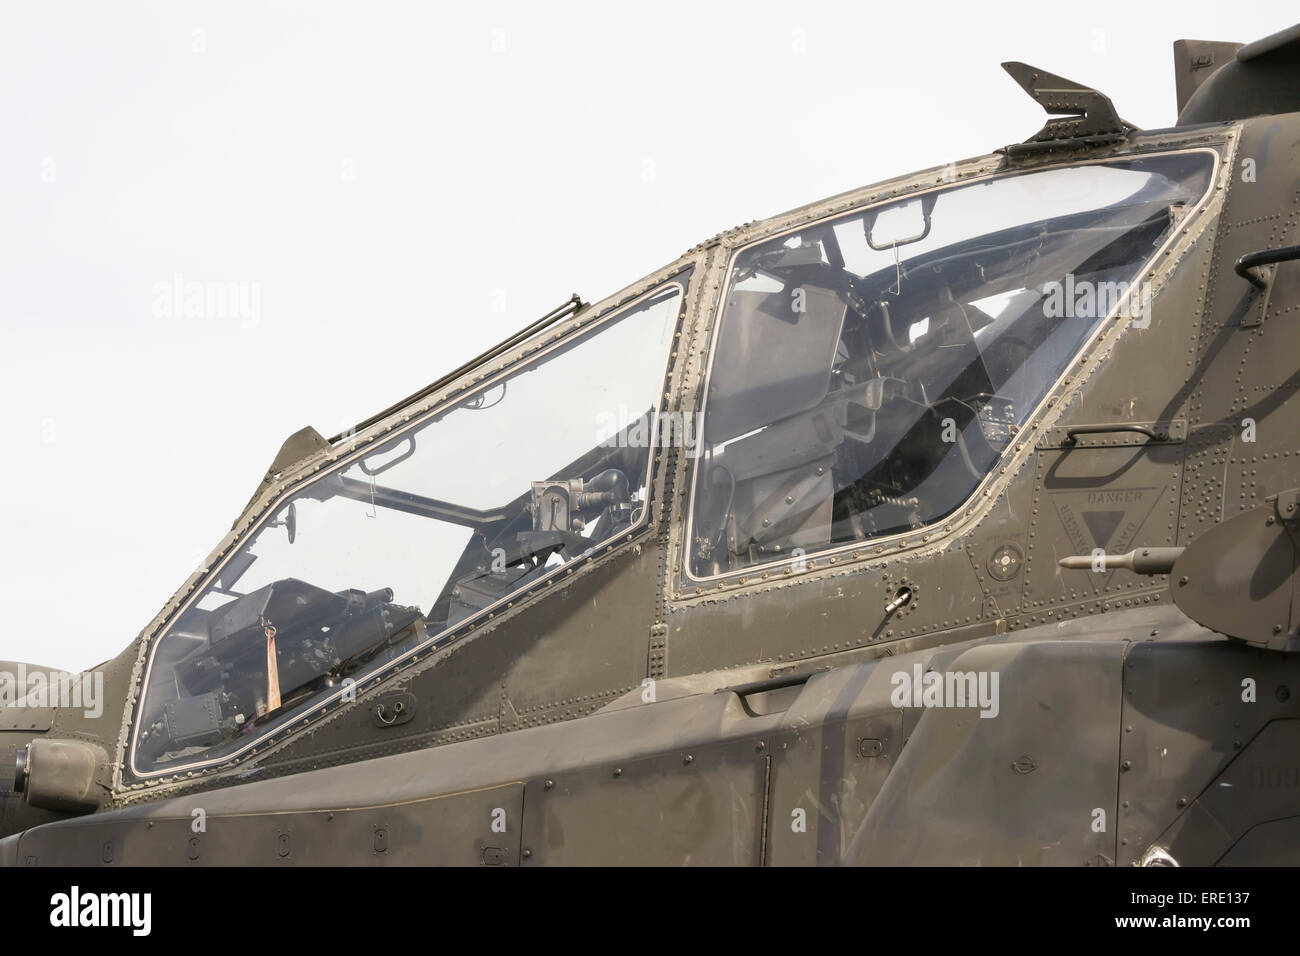 Modern attack helicopter cockpit with two man crew capability , outside view - Stock Image